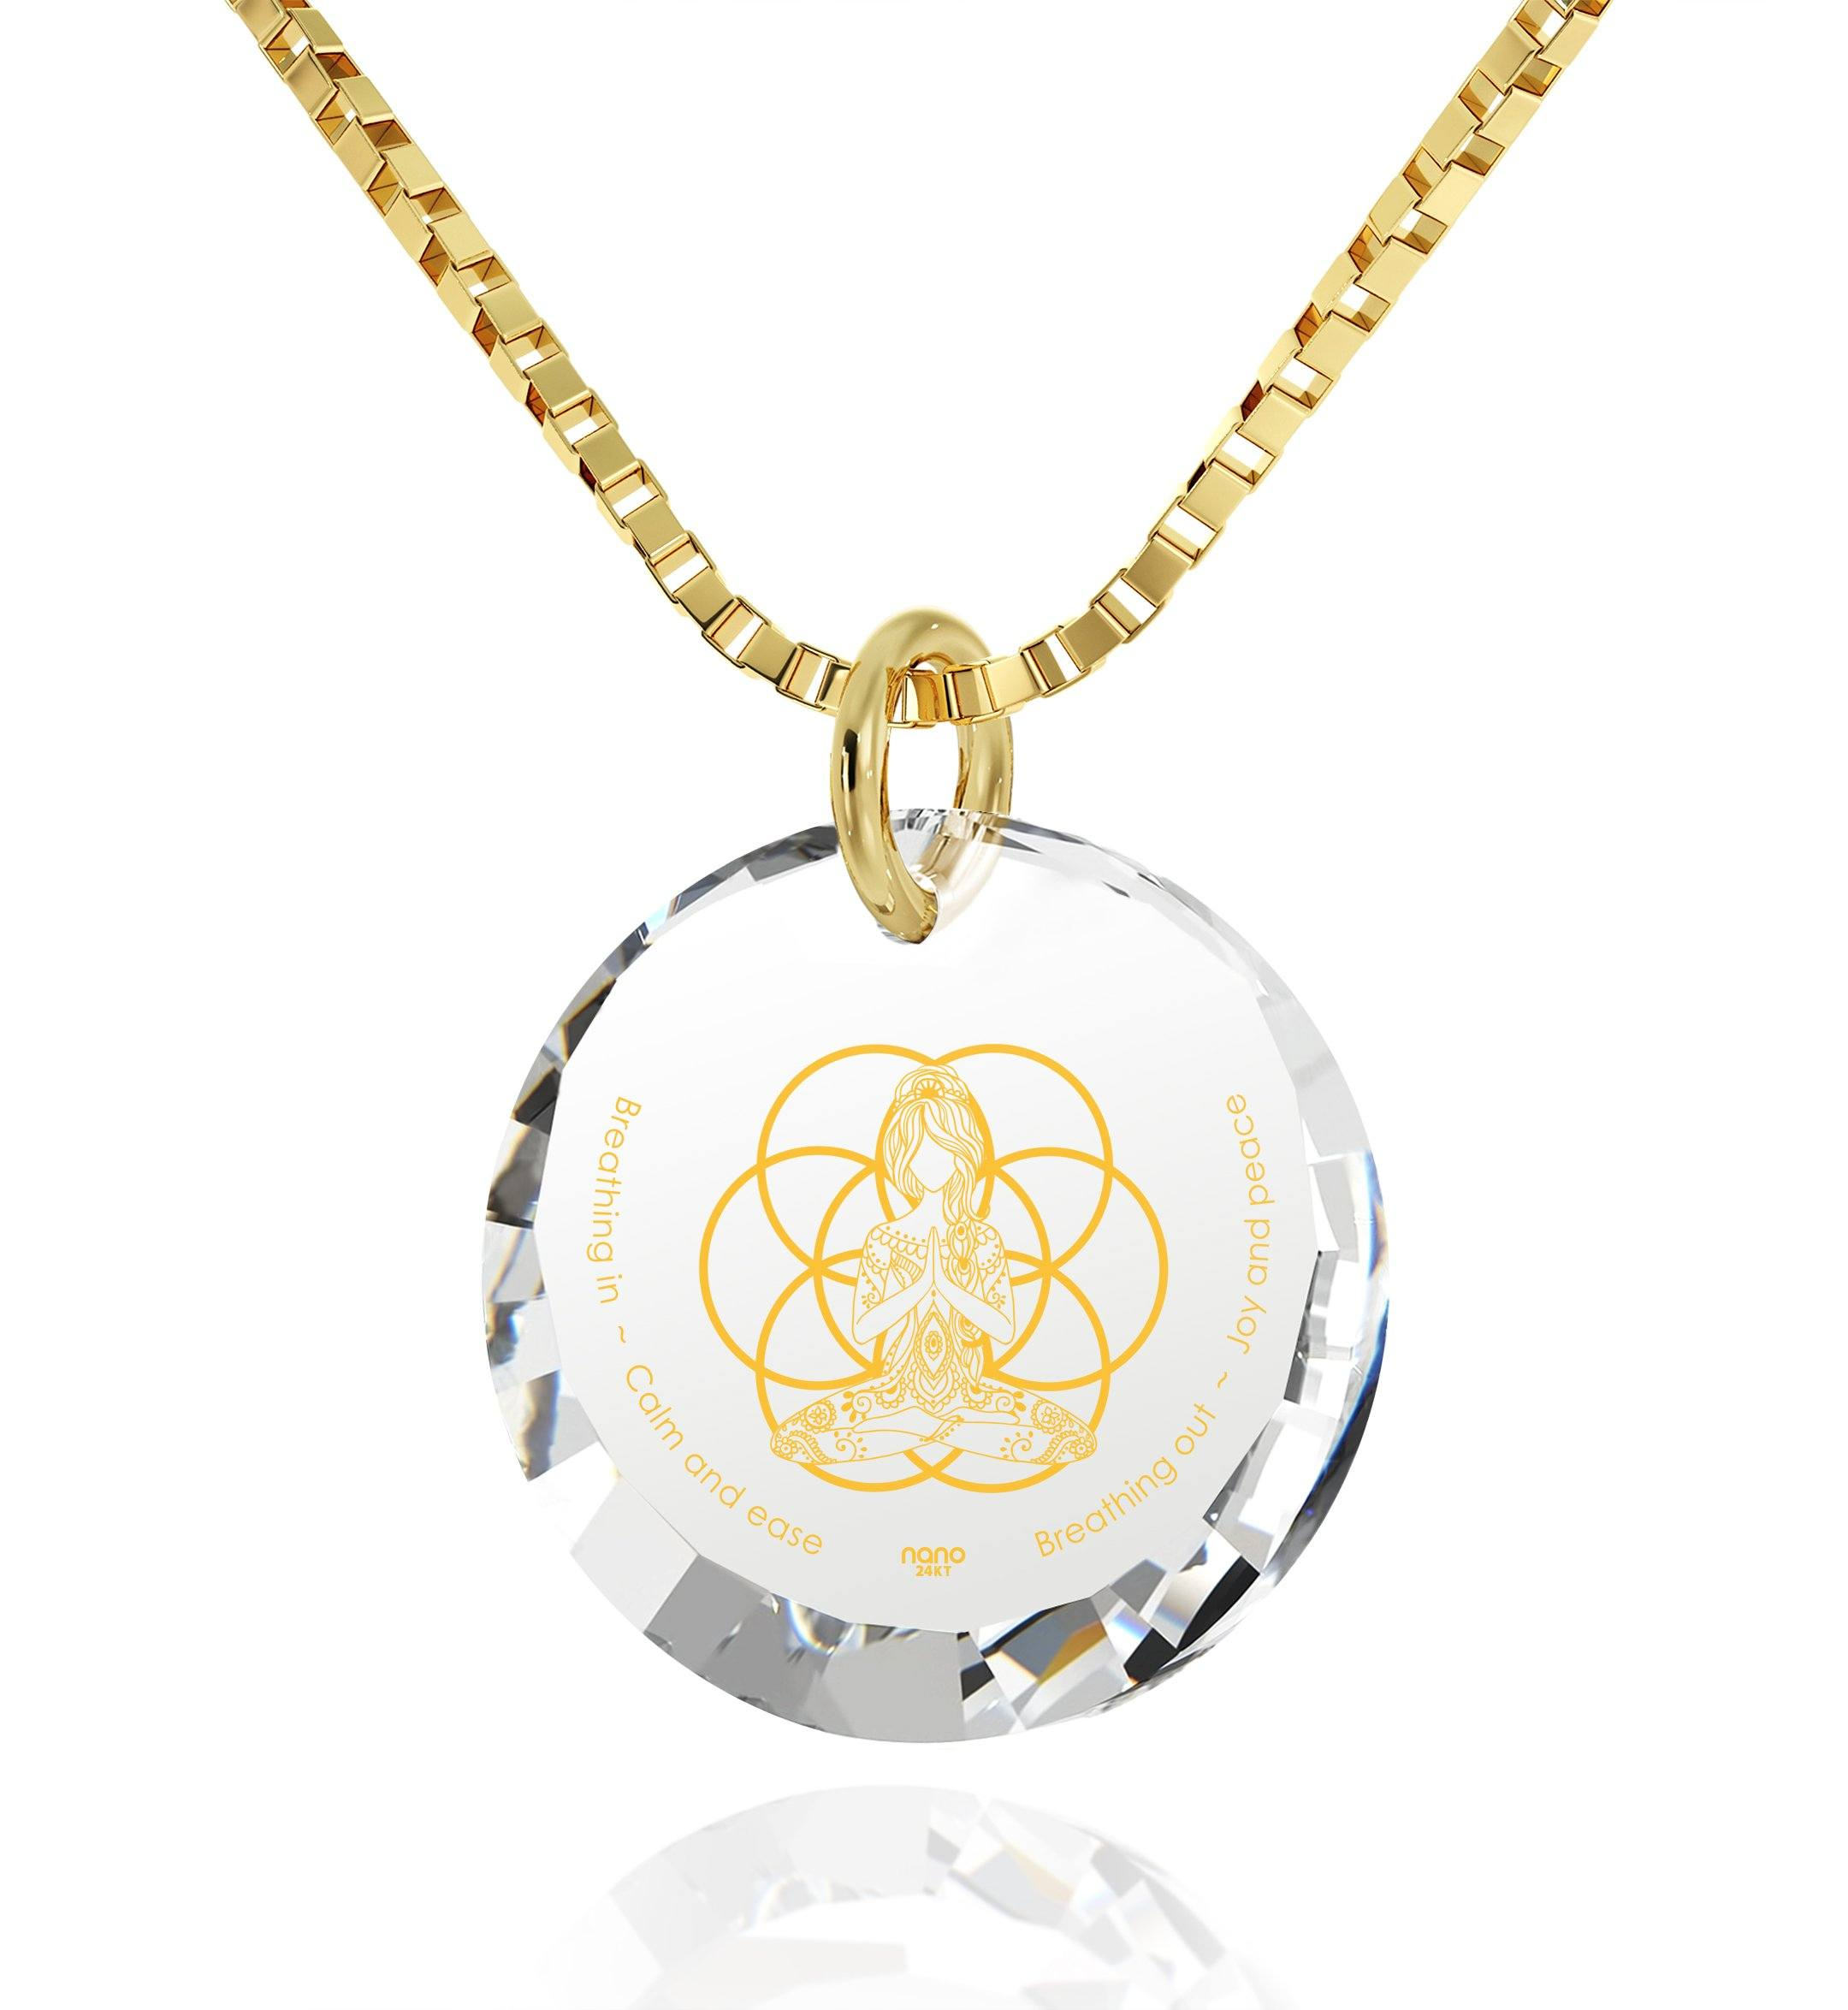 """Breathe in, Breathe out"" Engraved in 24k, Buddhist Jewellery with CZ Stone, Spiritual Store, Fine Gold Jewellery"